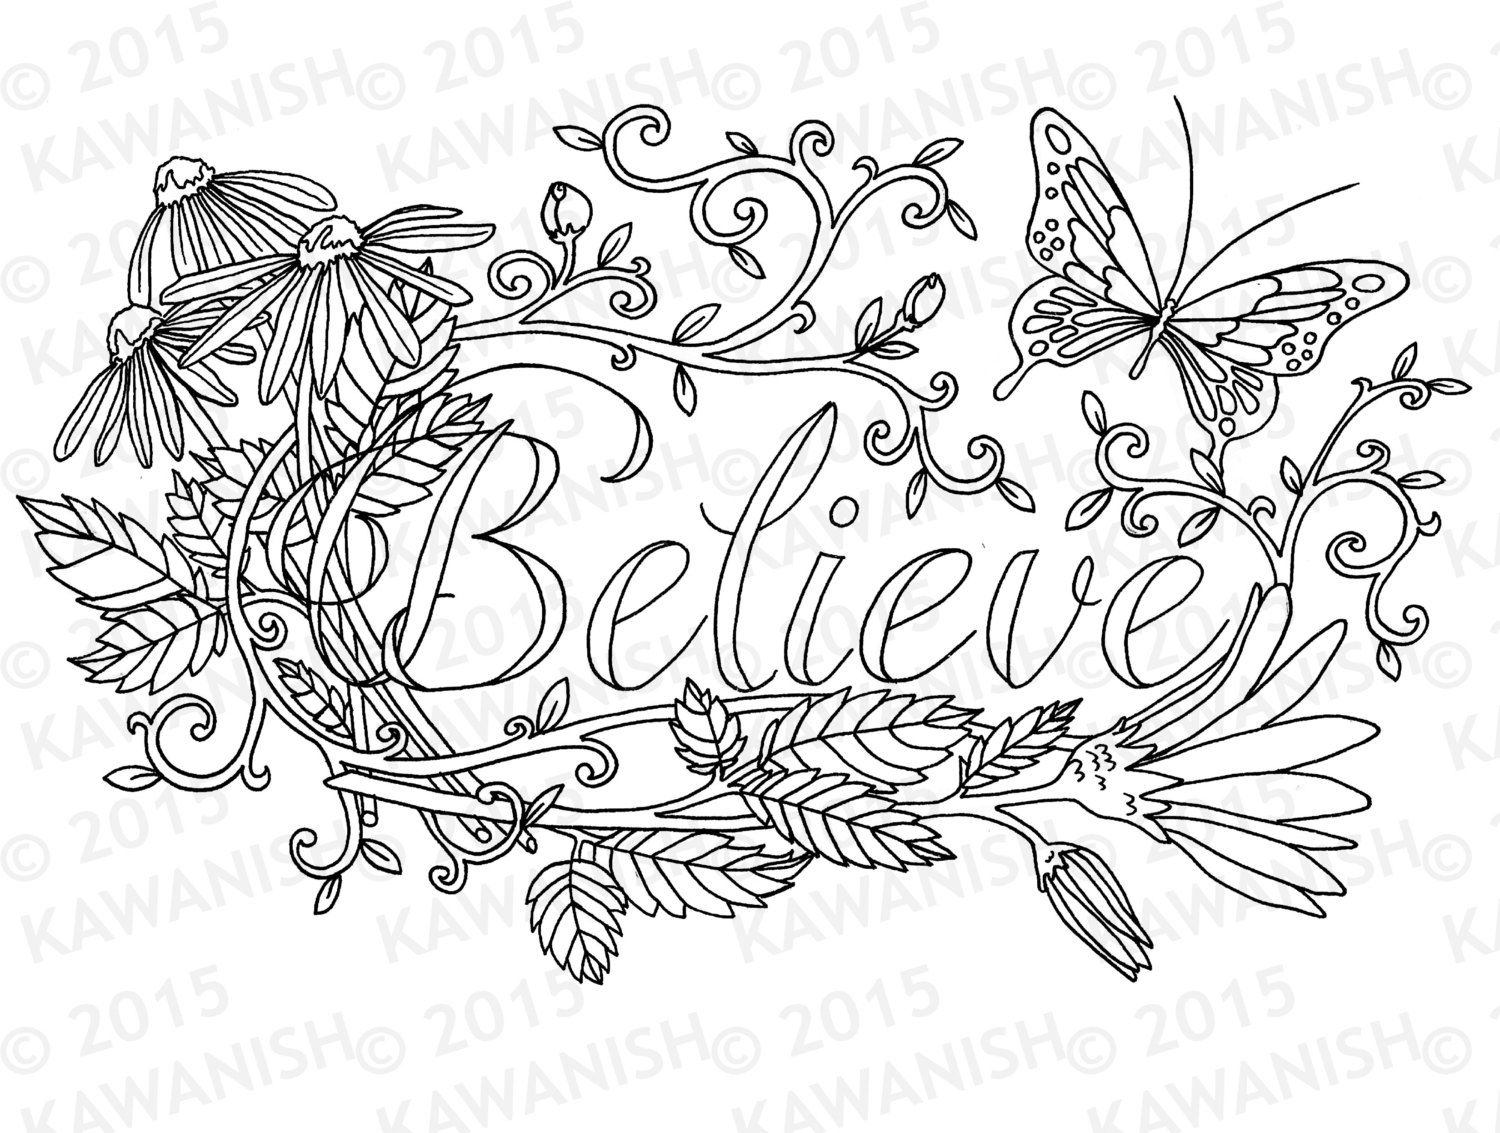 believe flower inspirational coloring page gift by kawanish